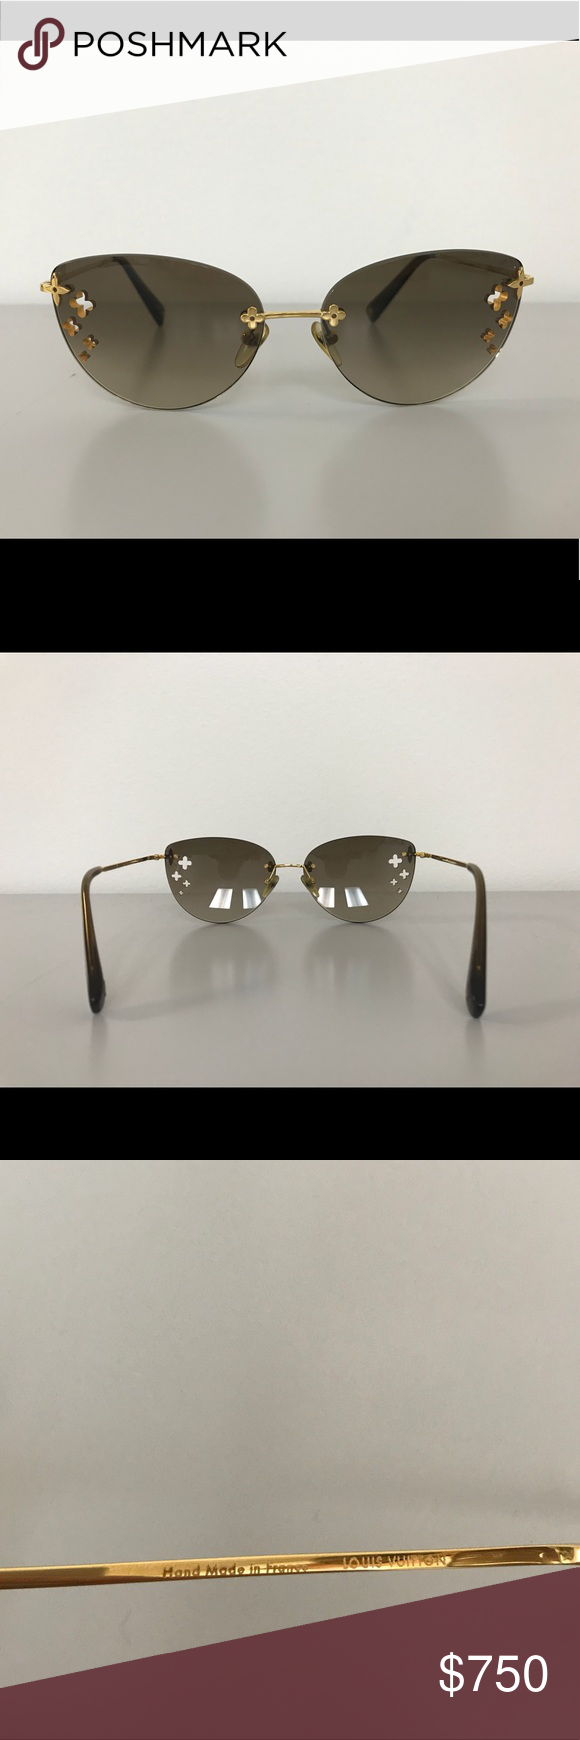 a281b1b5200f Louis Vuitton Desmayo Cat Eye Sunglasses Authentic Louis Vuitton Desmayo  Cat Eye Sunglasses Z0051U In mint condition. Box is not included